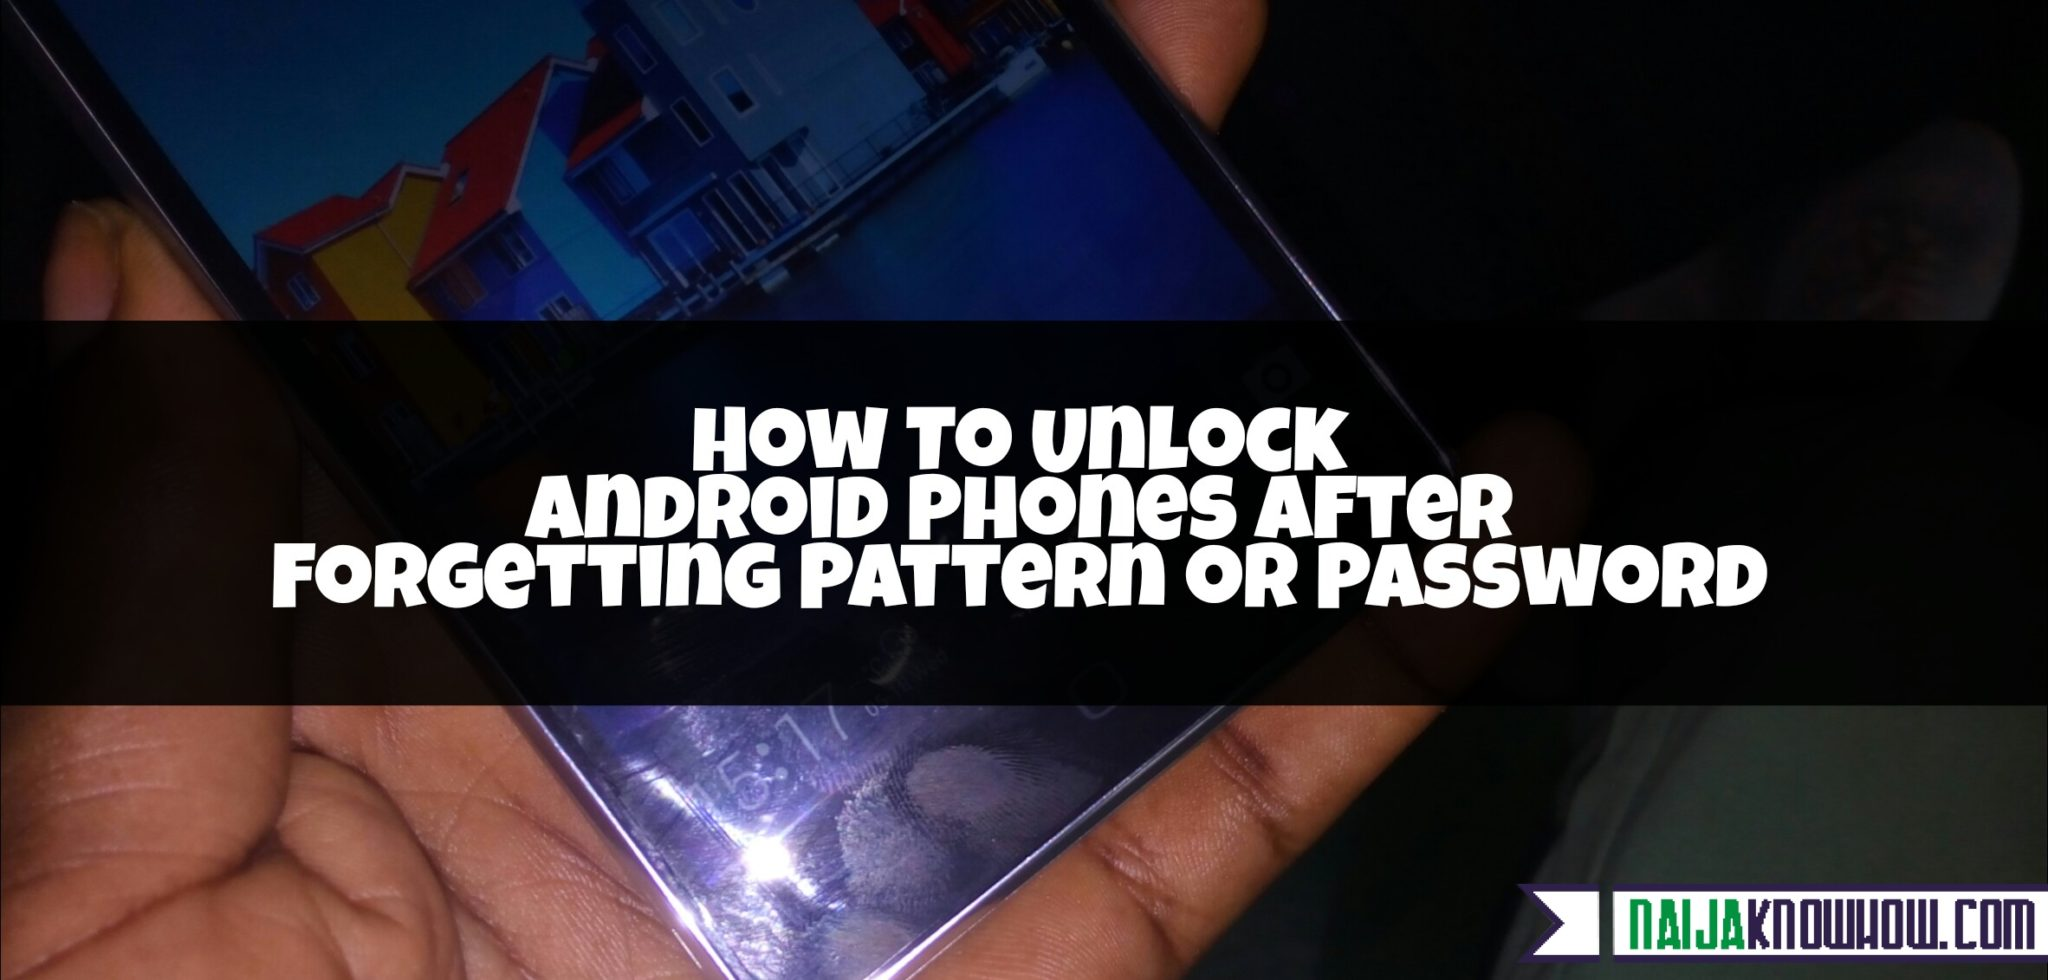 How To Unlock Android Phones [Tecno, Infinix, Innjoo, Huawei